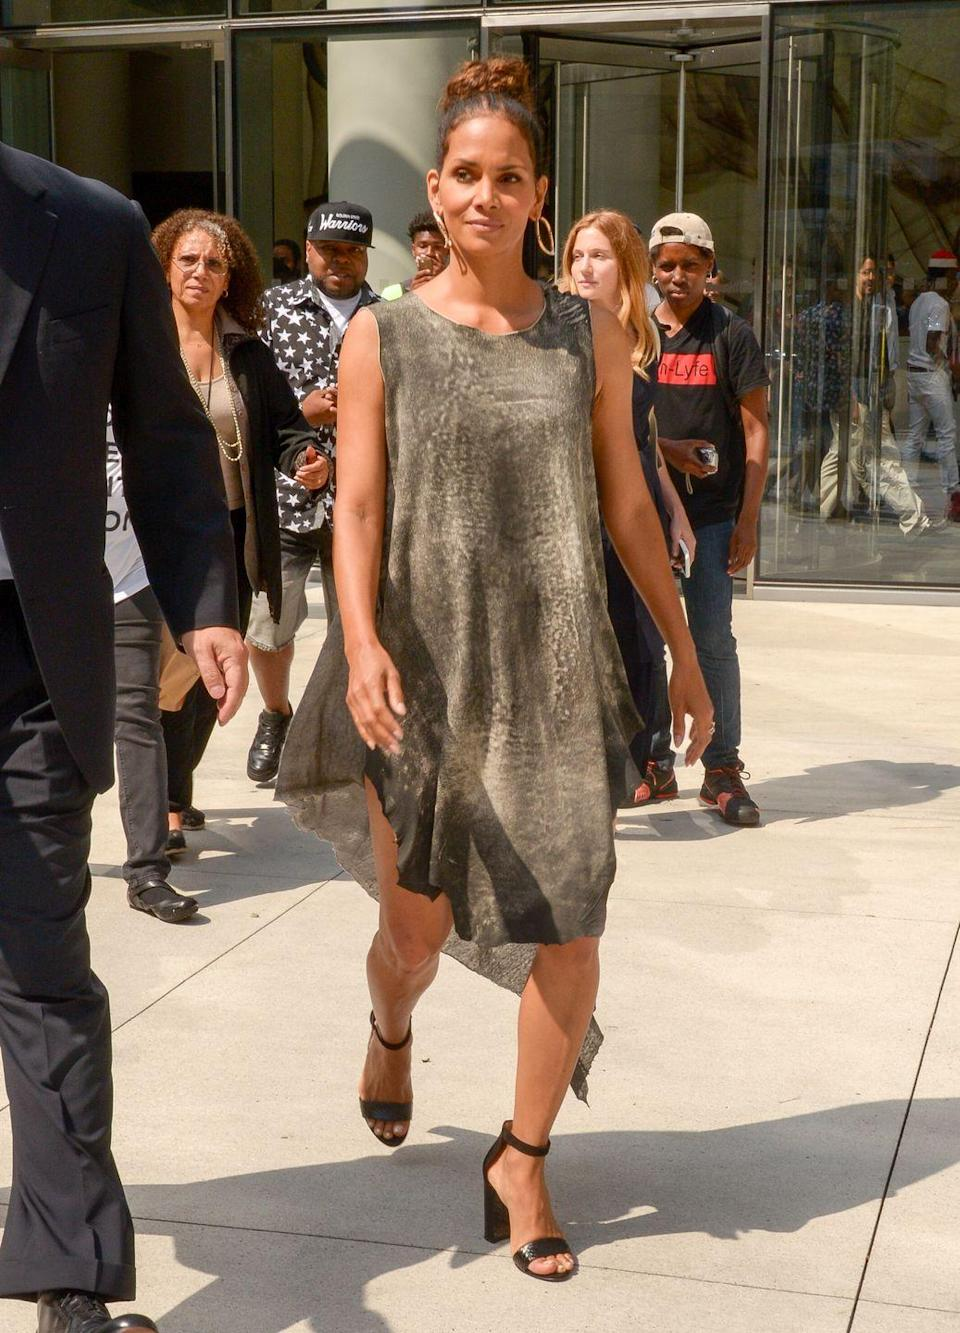 "<p>Some days, you just don't feel like going all in—and that's totally okay. Halle and Thomas said in a <a href=""https://www.womenshealthmag.com/fitness/a26839980/halle-berry-favorite-low-impact-workout-instagram/"" rel=""nofollow noopener"" target=""_blank"" data-ylk=""slk:#FitnessFriday"" class=""link rapid-noclick-resp"">#FitnessFriday</a> video that walking up stairs or hills is a great low-impact substitute for running.<br></p>"